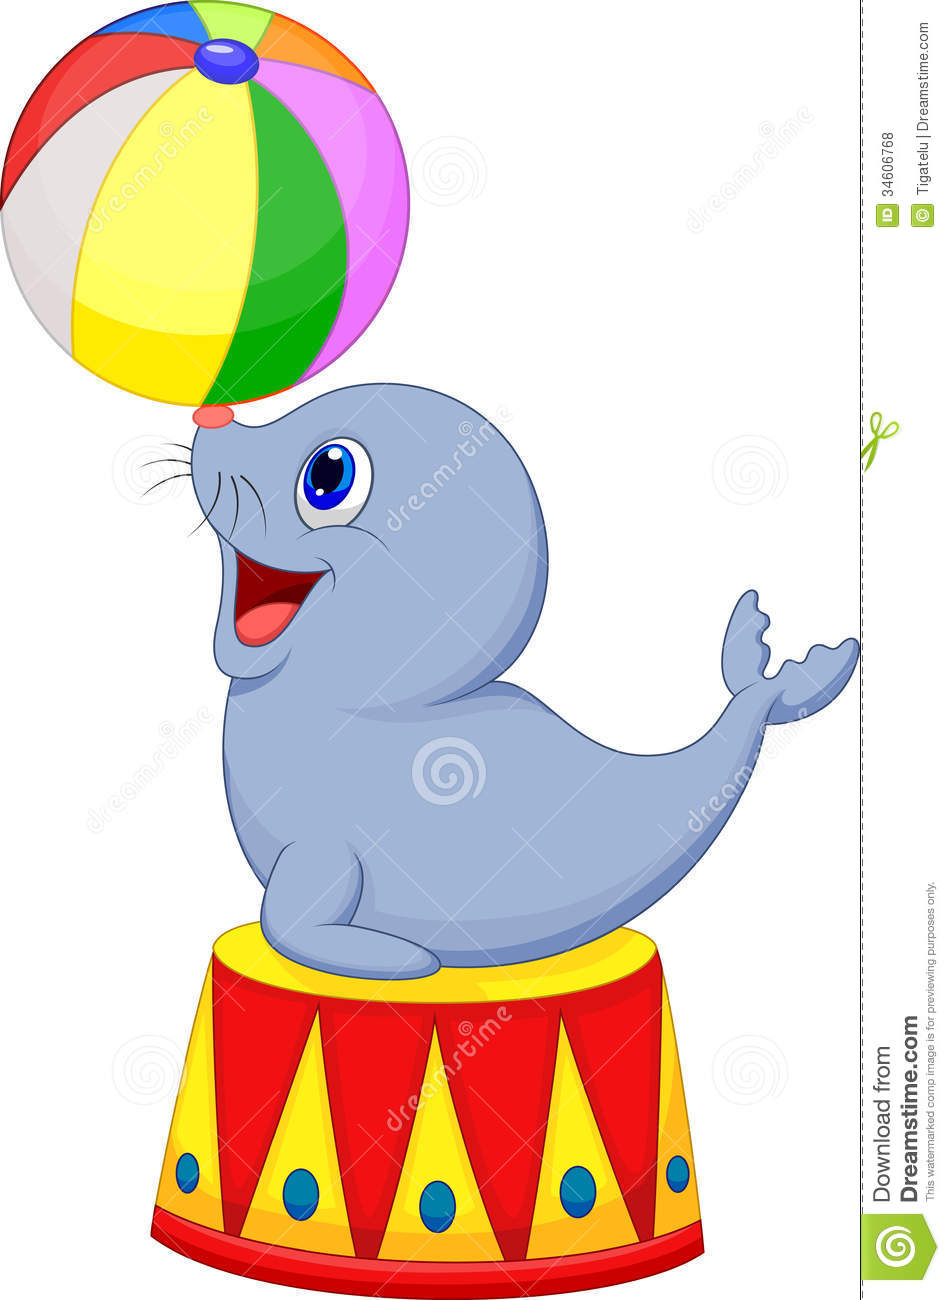 950x1300 Circus Cartoon Seal Playing A Ball